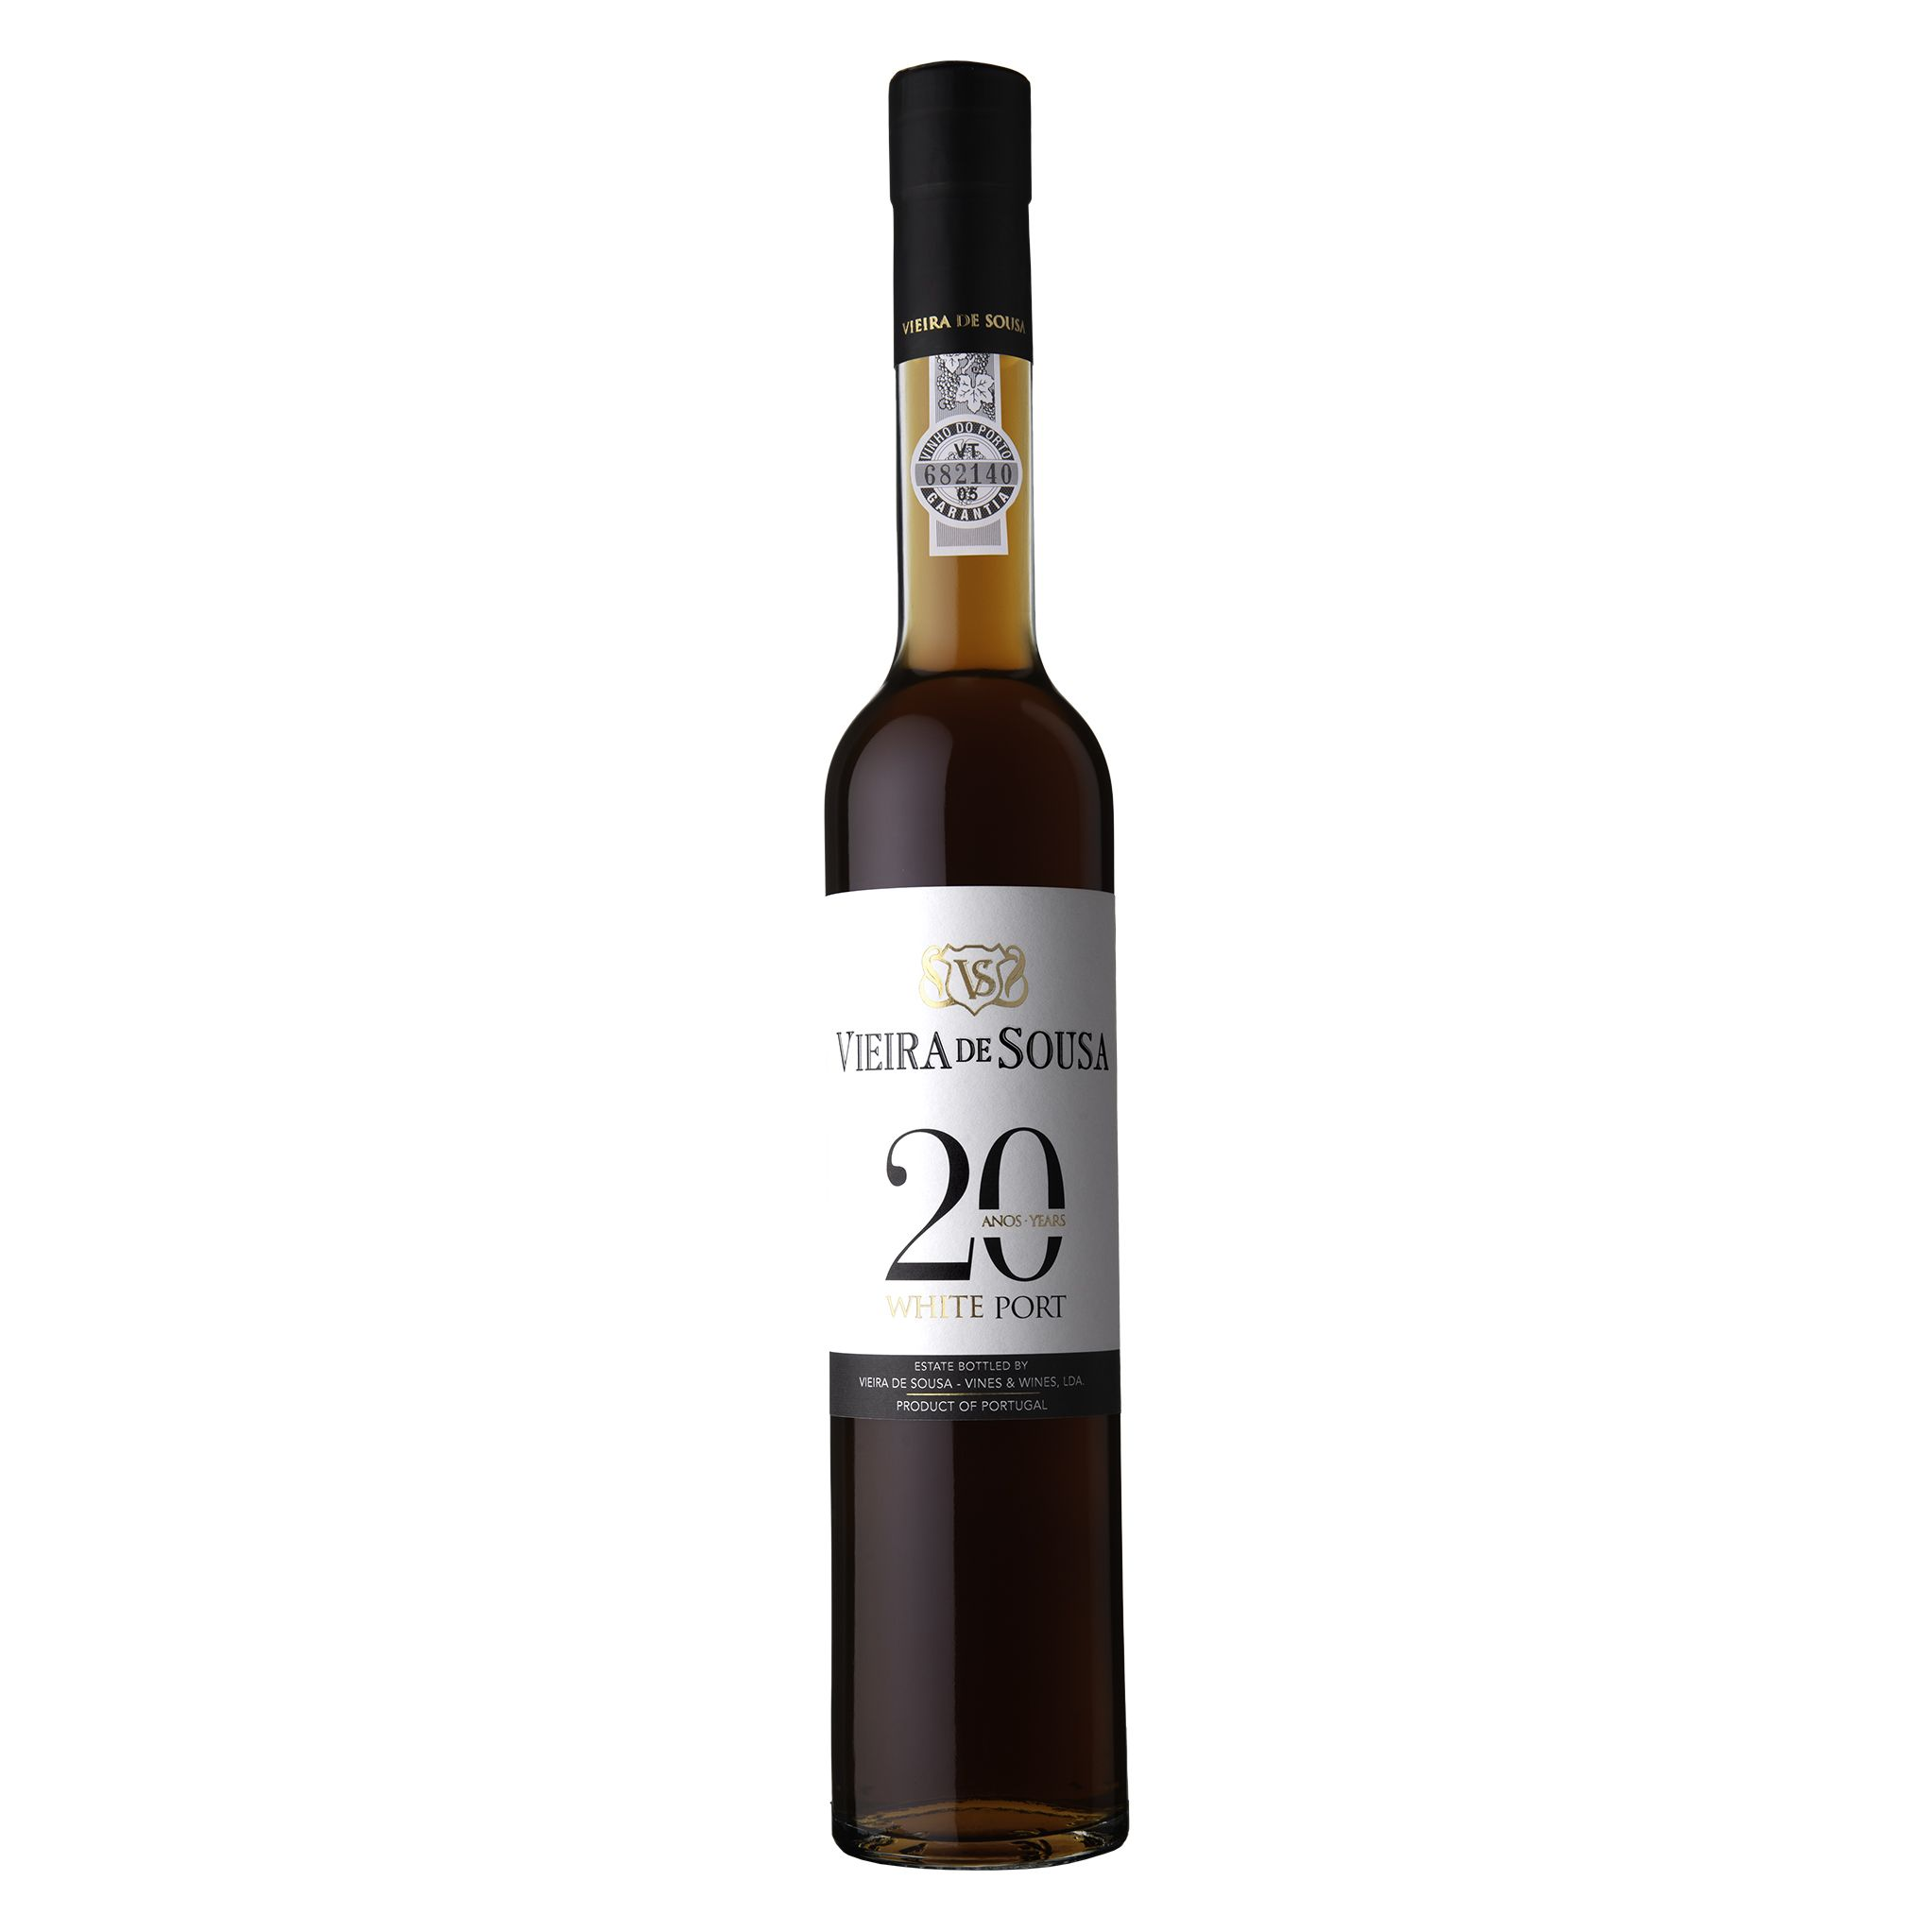 Vieira de Sousa 20 Years Old White Port